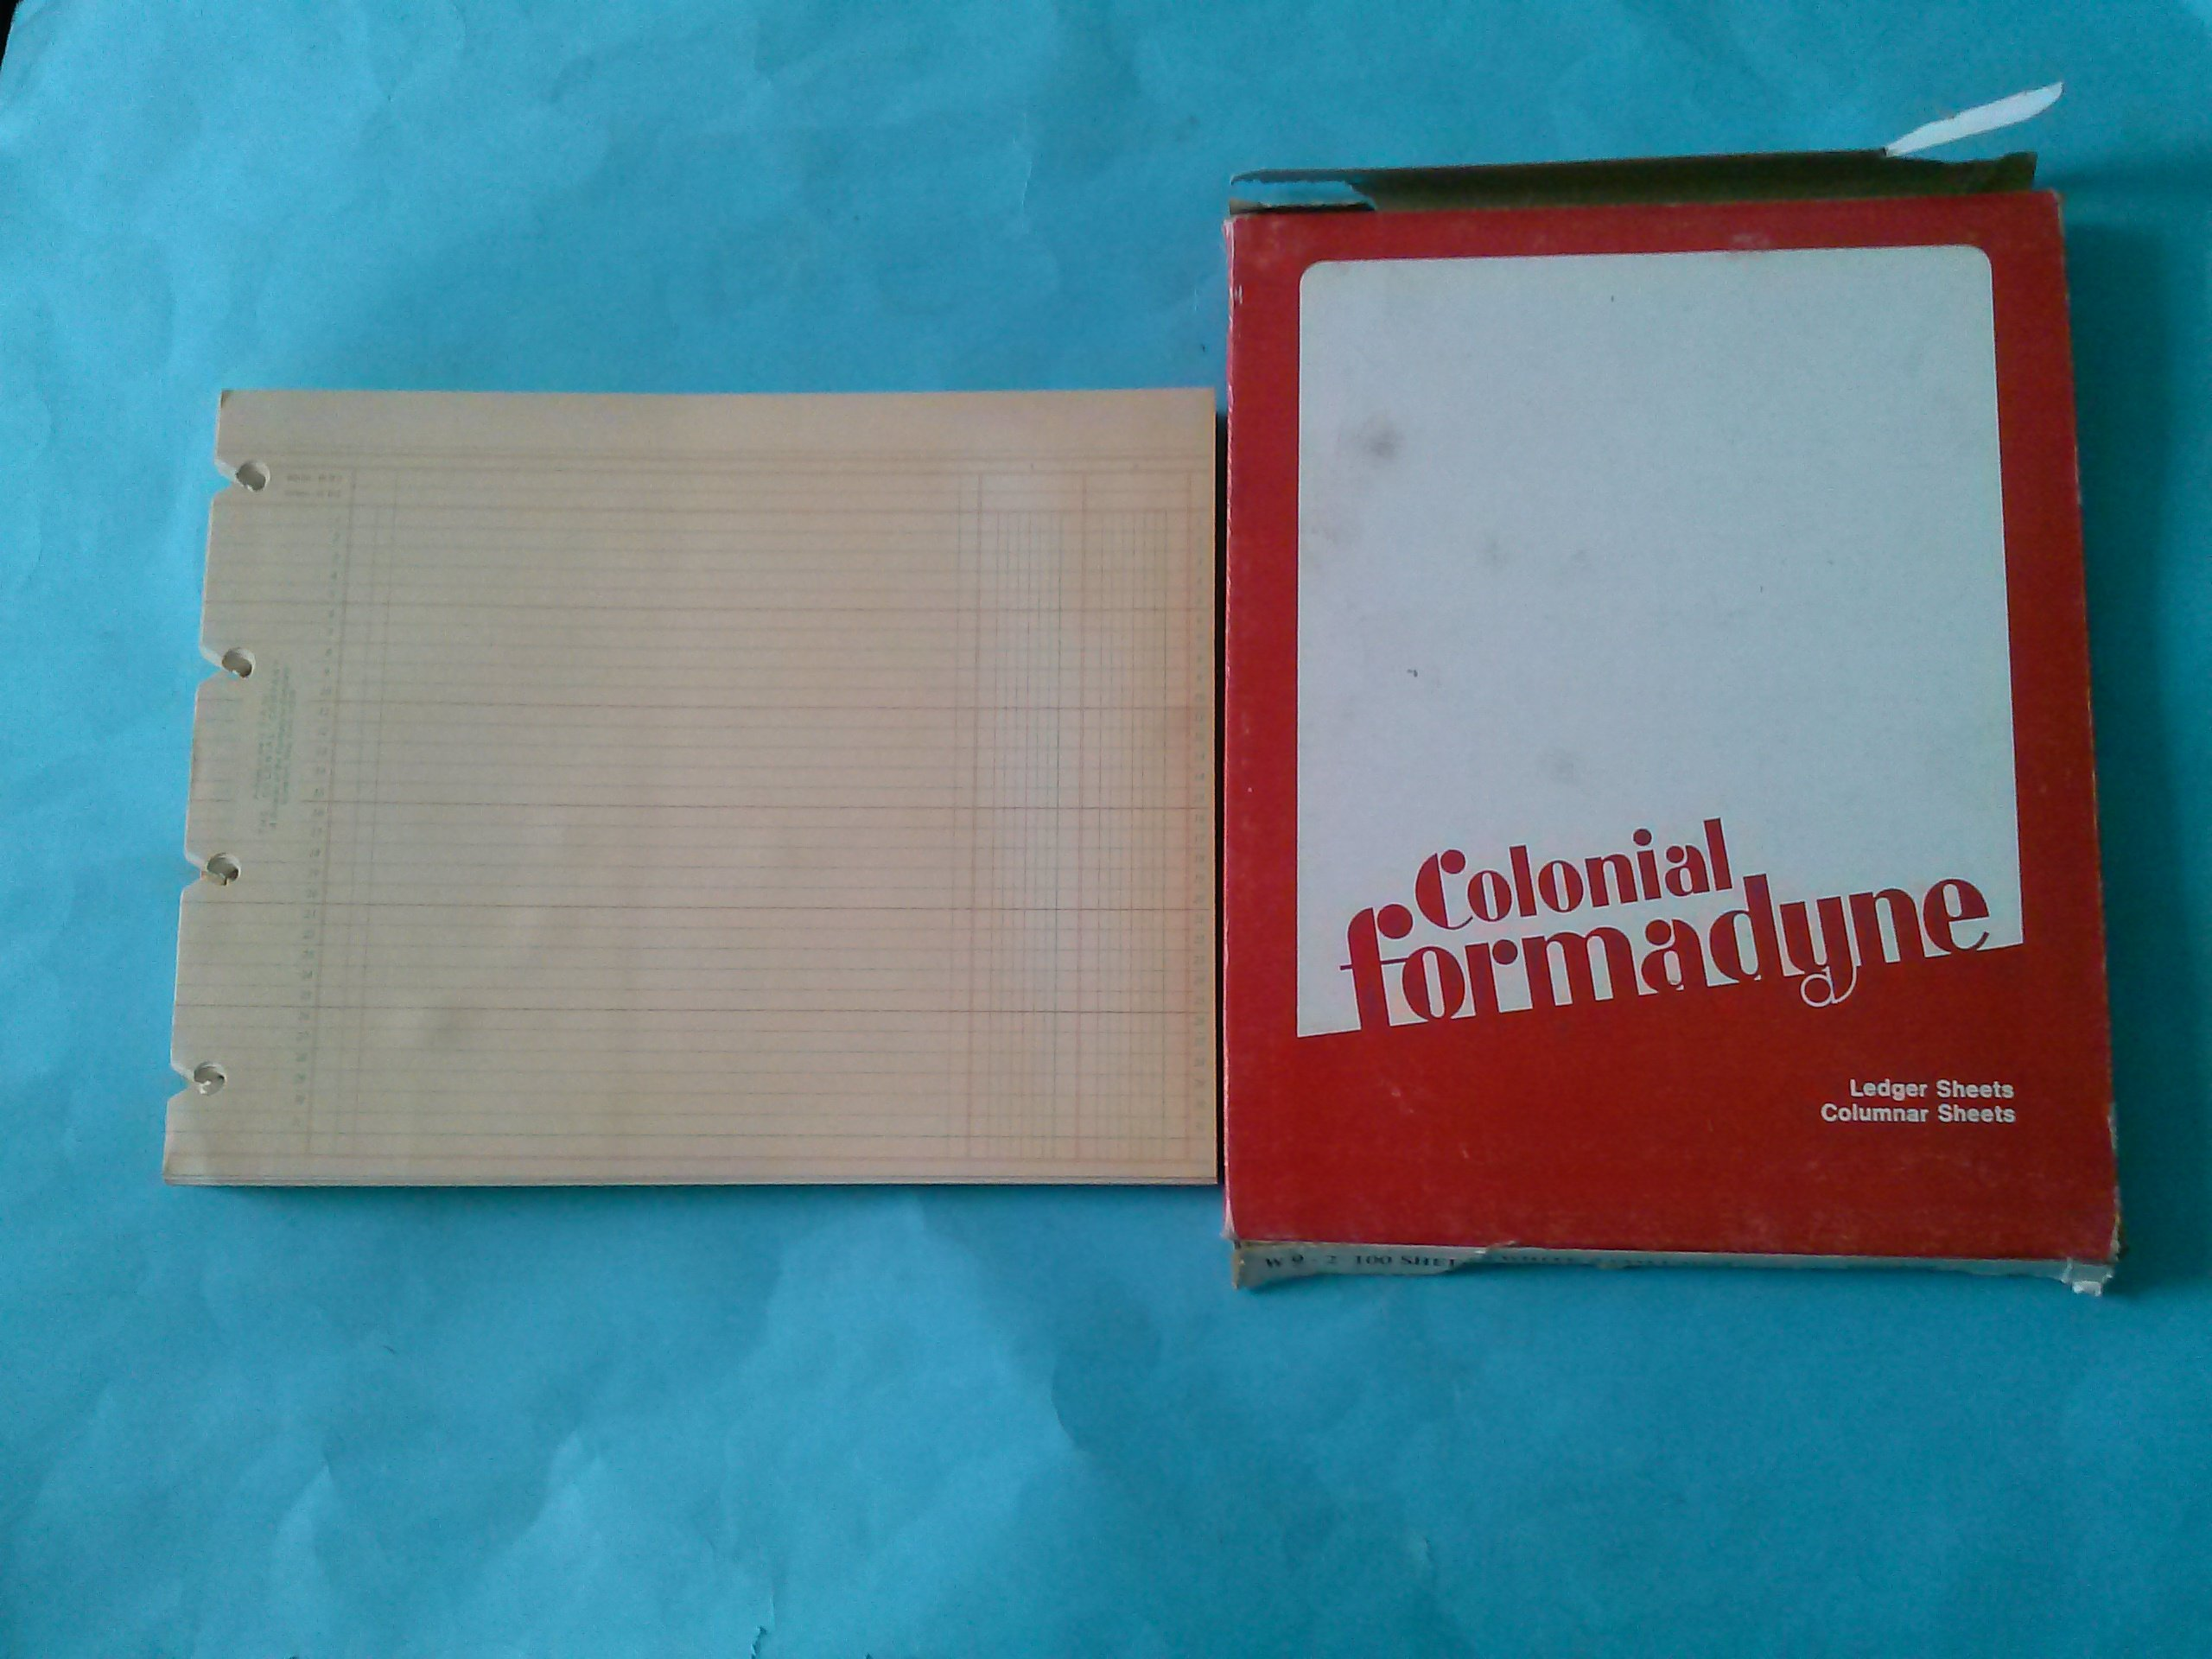 Colonial Formadyne W9-2 Ledger Sheets Columnar Sheets White 2 Columns 100 Sheets 9 1/4'' x 11 7/8'' 4 Slot Holes 32 Lines (Vintage Office Product)